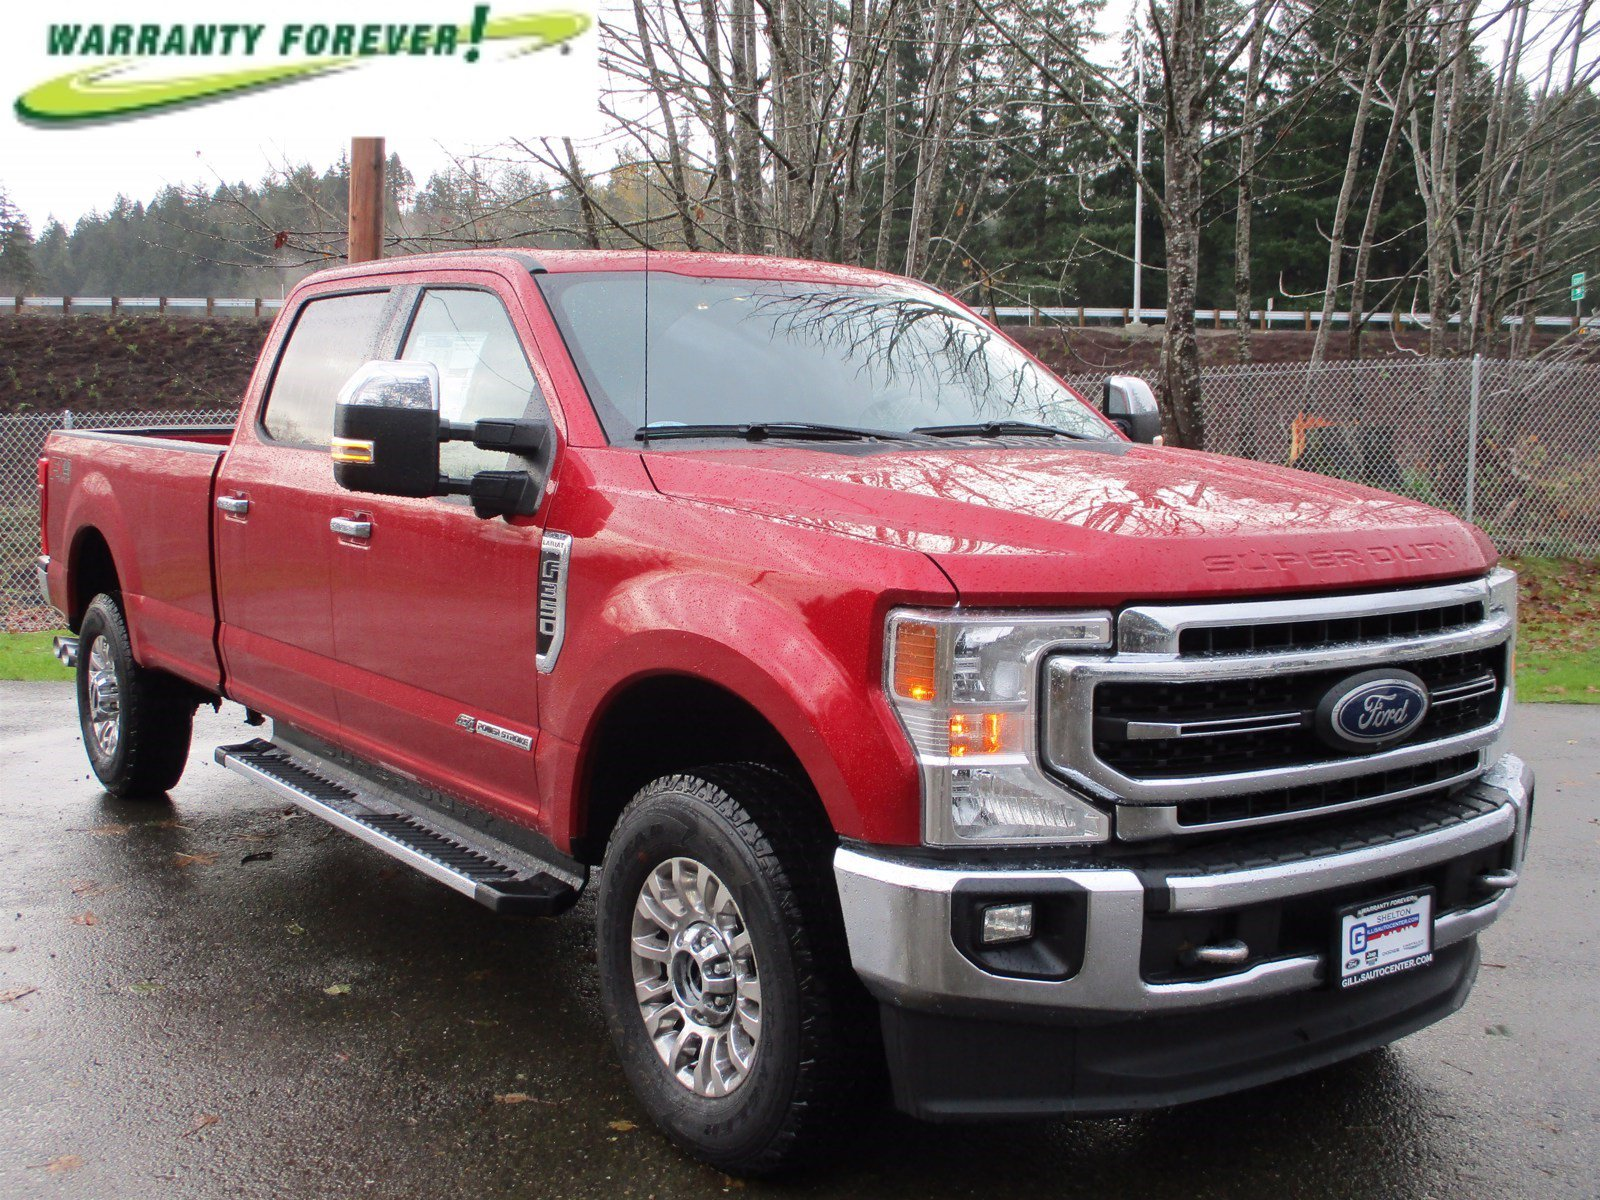 New-2020-Ford-Super-Duty-F-350-SRW